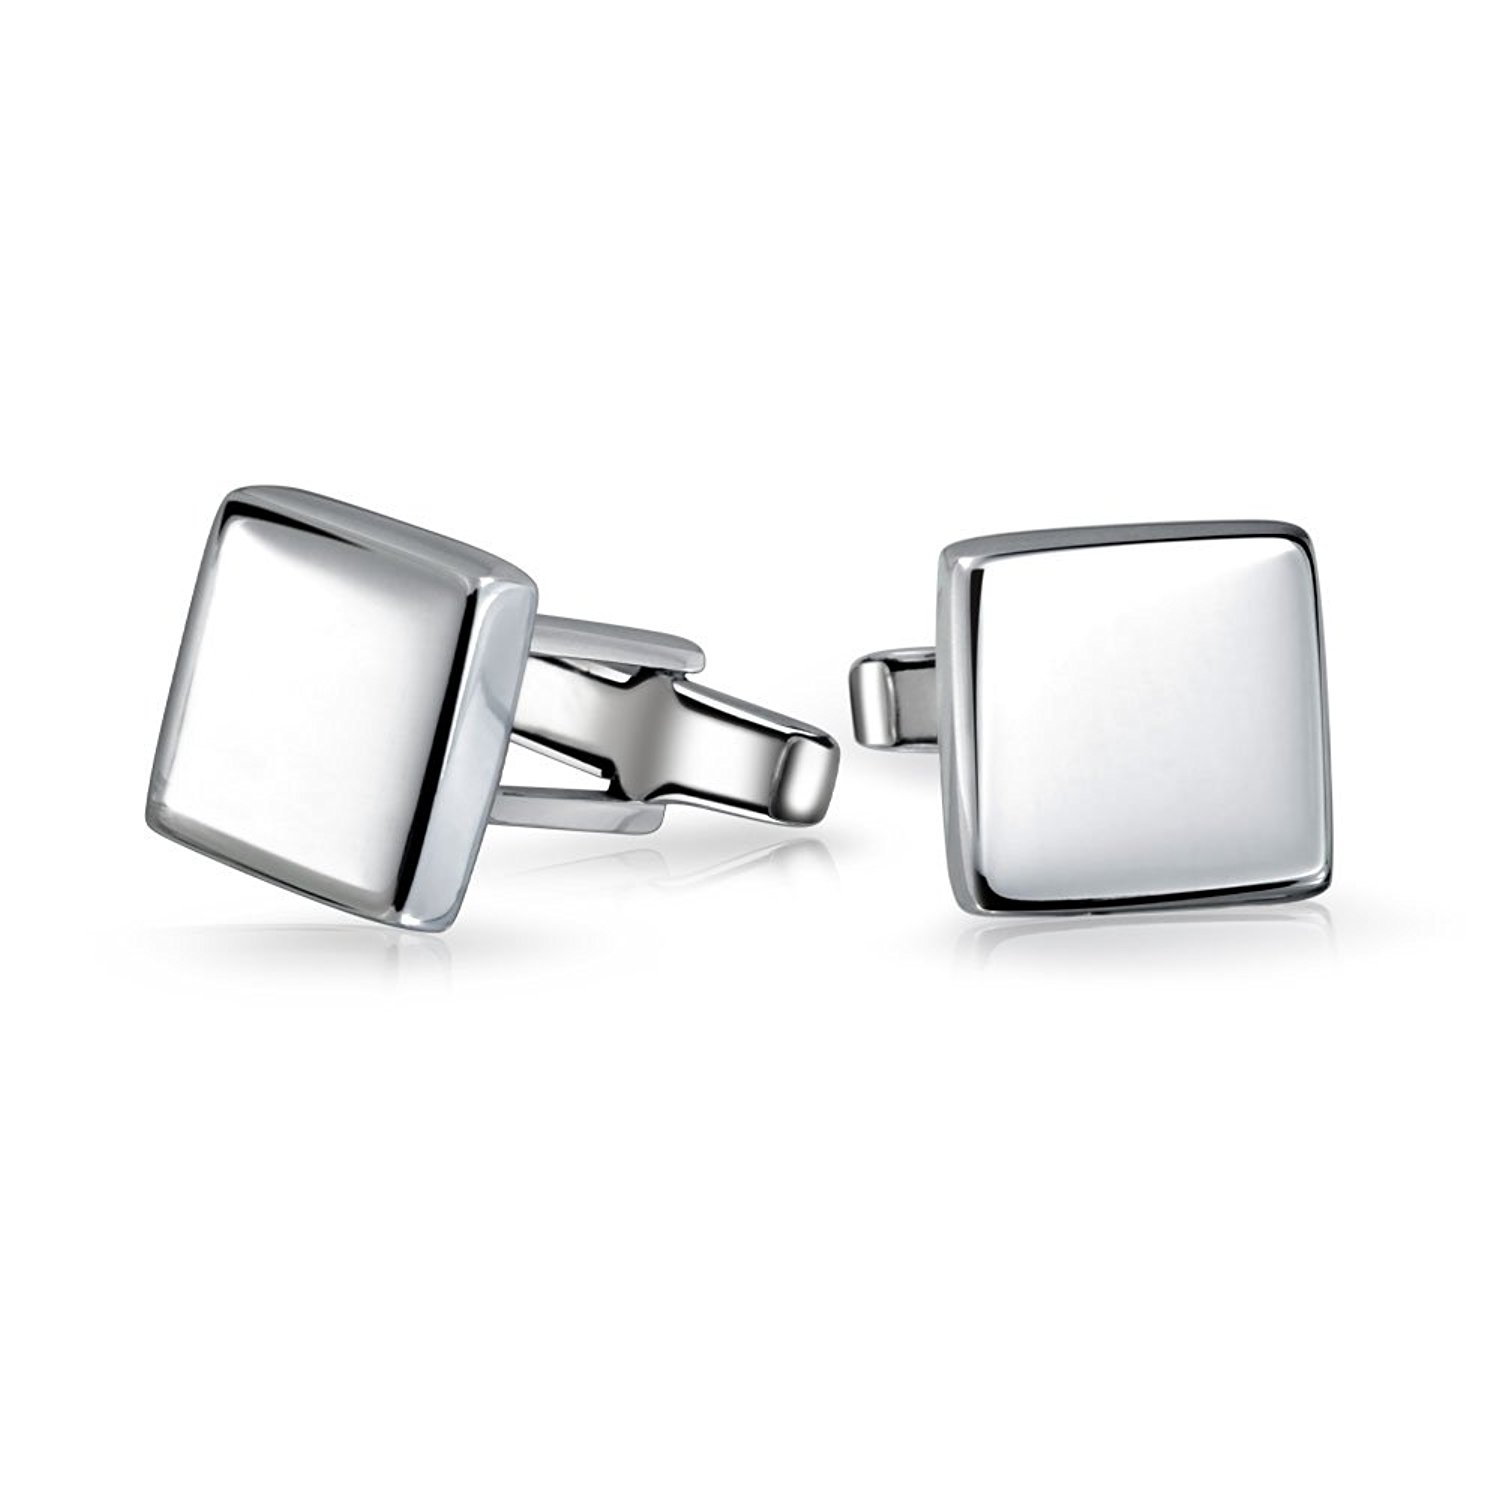 High Polished 925 Sterling Silver Modern Square Mens Cufflinks with Engraving